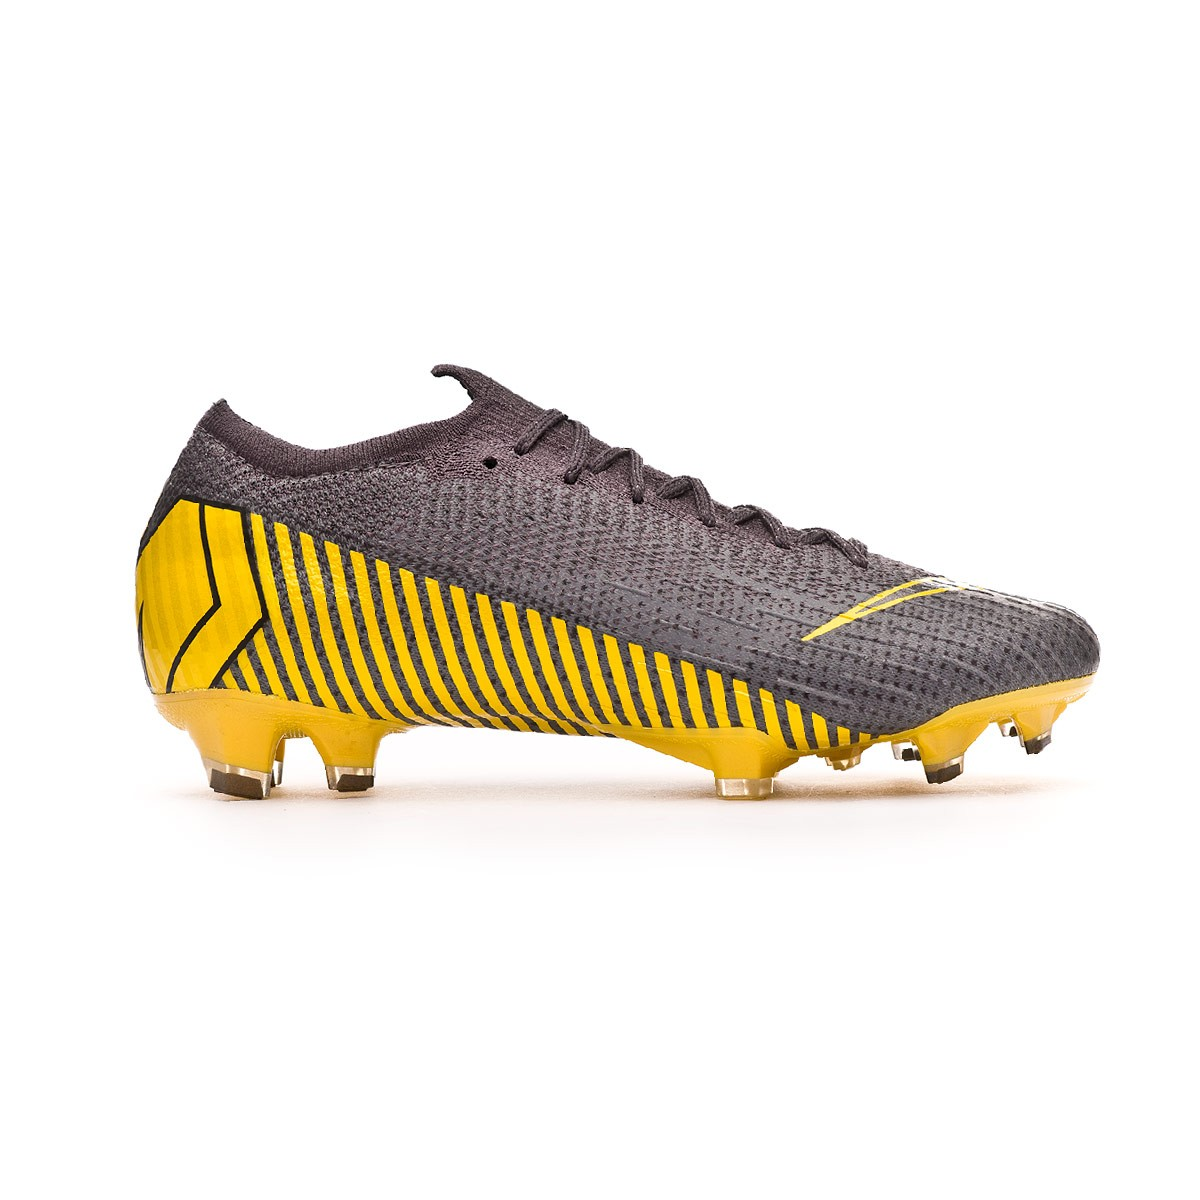 ff809730402 Football Boots Nike Mercurial Vapor XII Elite FG Thunder grey-Black-Dark  grey - Tienda de fútbol Fútbol Emotion